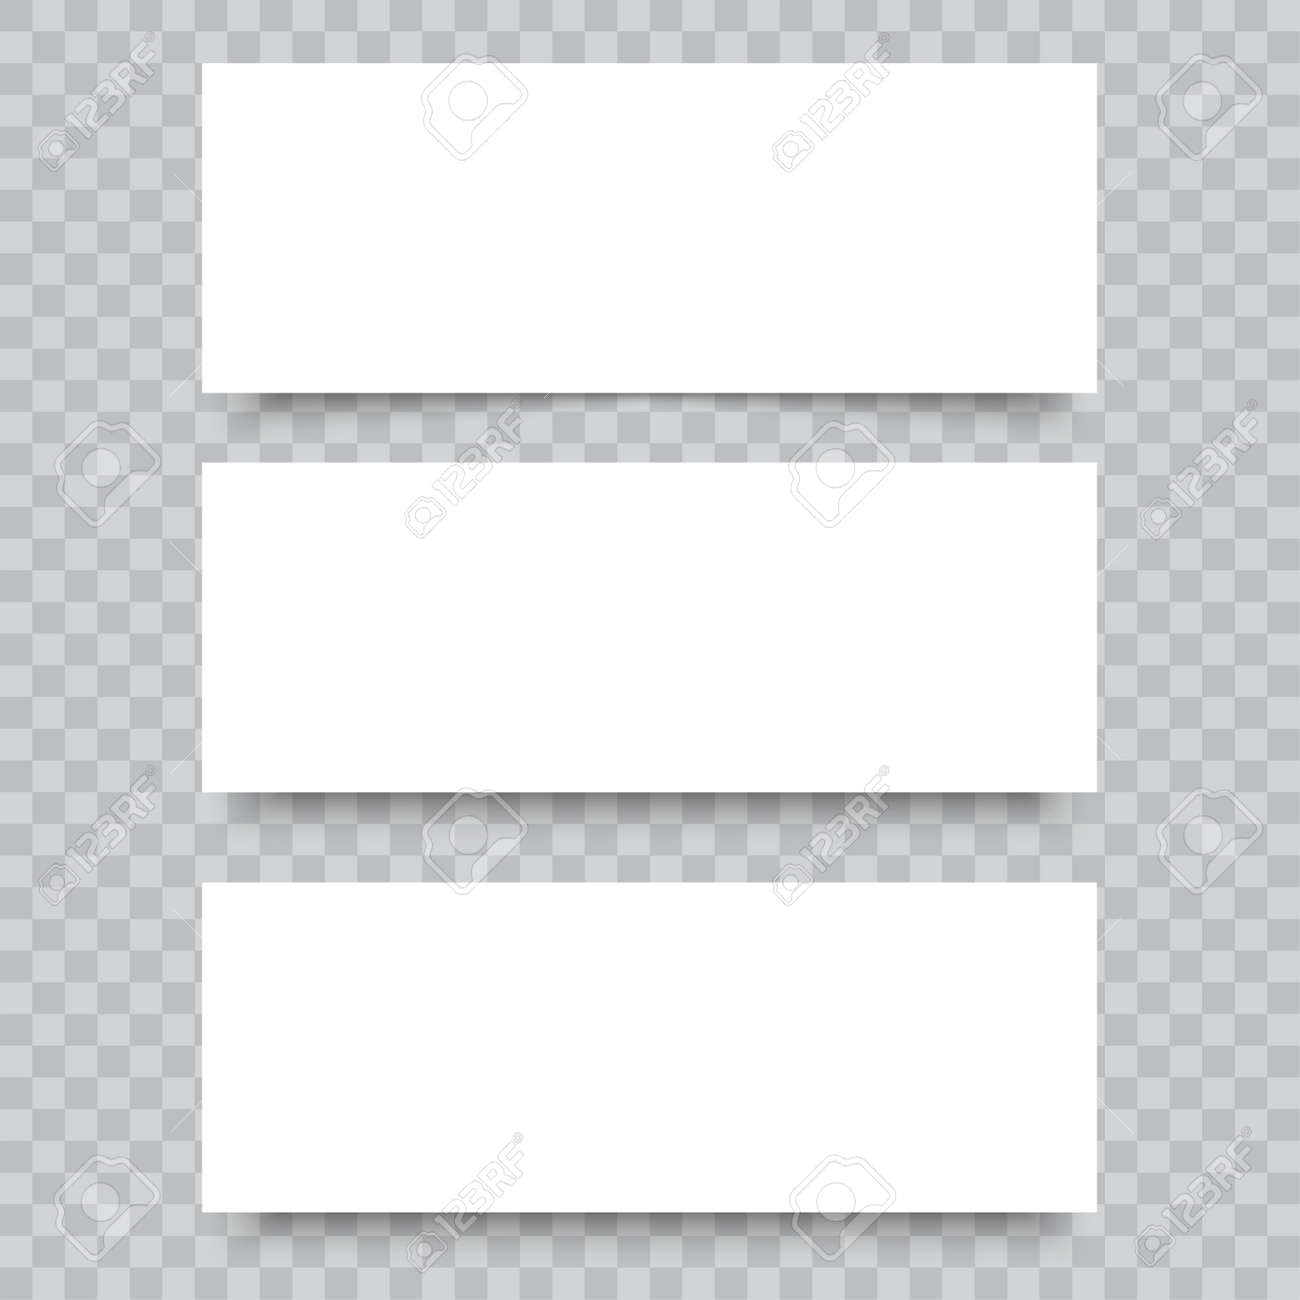 Blank of business cards on transparent background. Vector. - 125791995